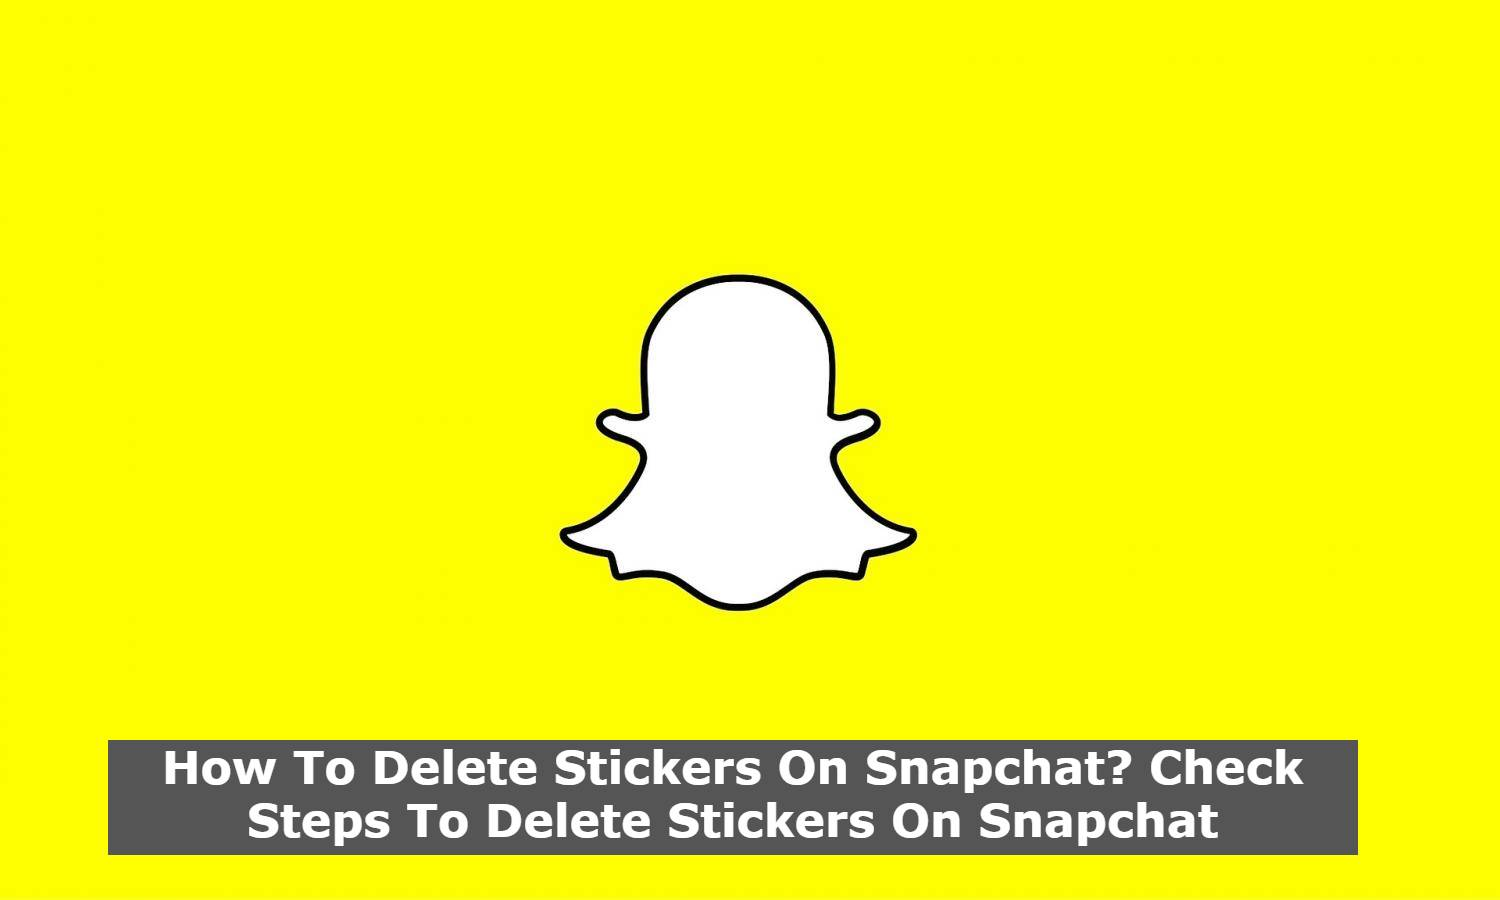 How To Delete Stickers On Snapchat? Check Steps To Delete Stickers On Snapchat